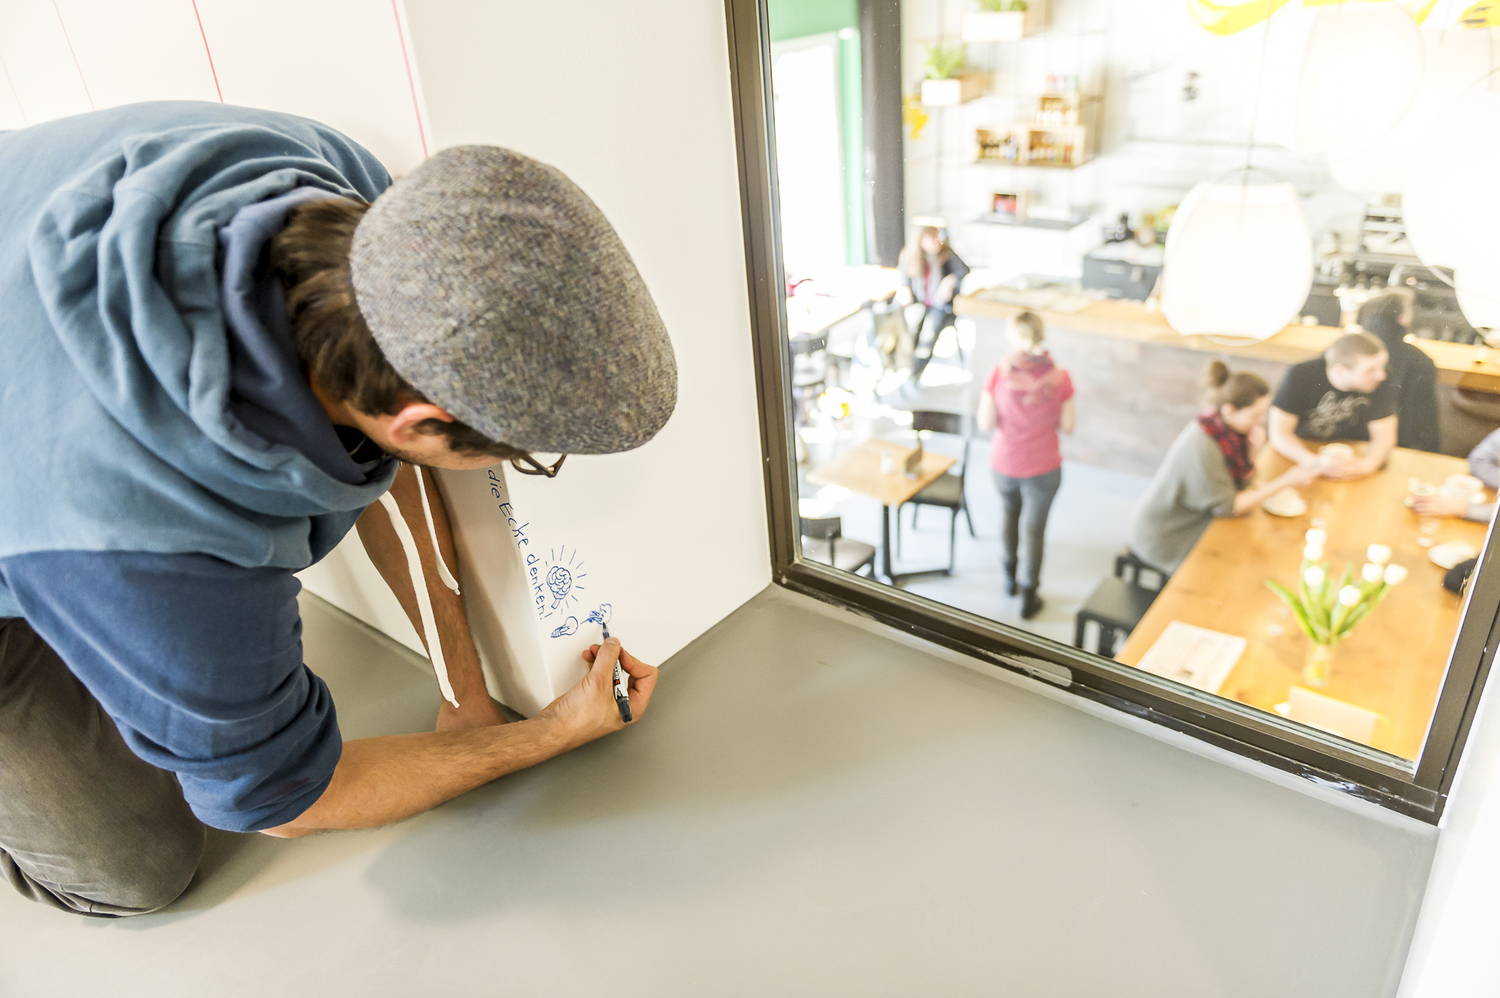 An employee writes on his IdeaPaint dry erase wall at the workplace.